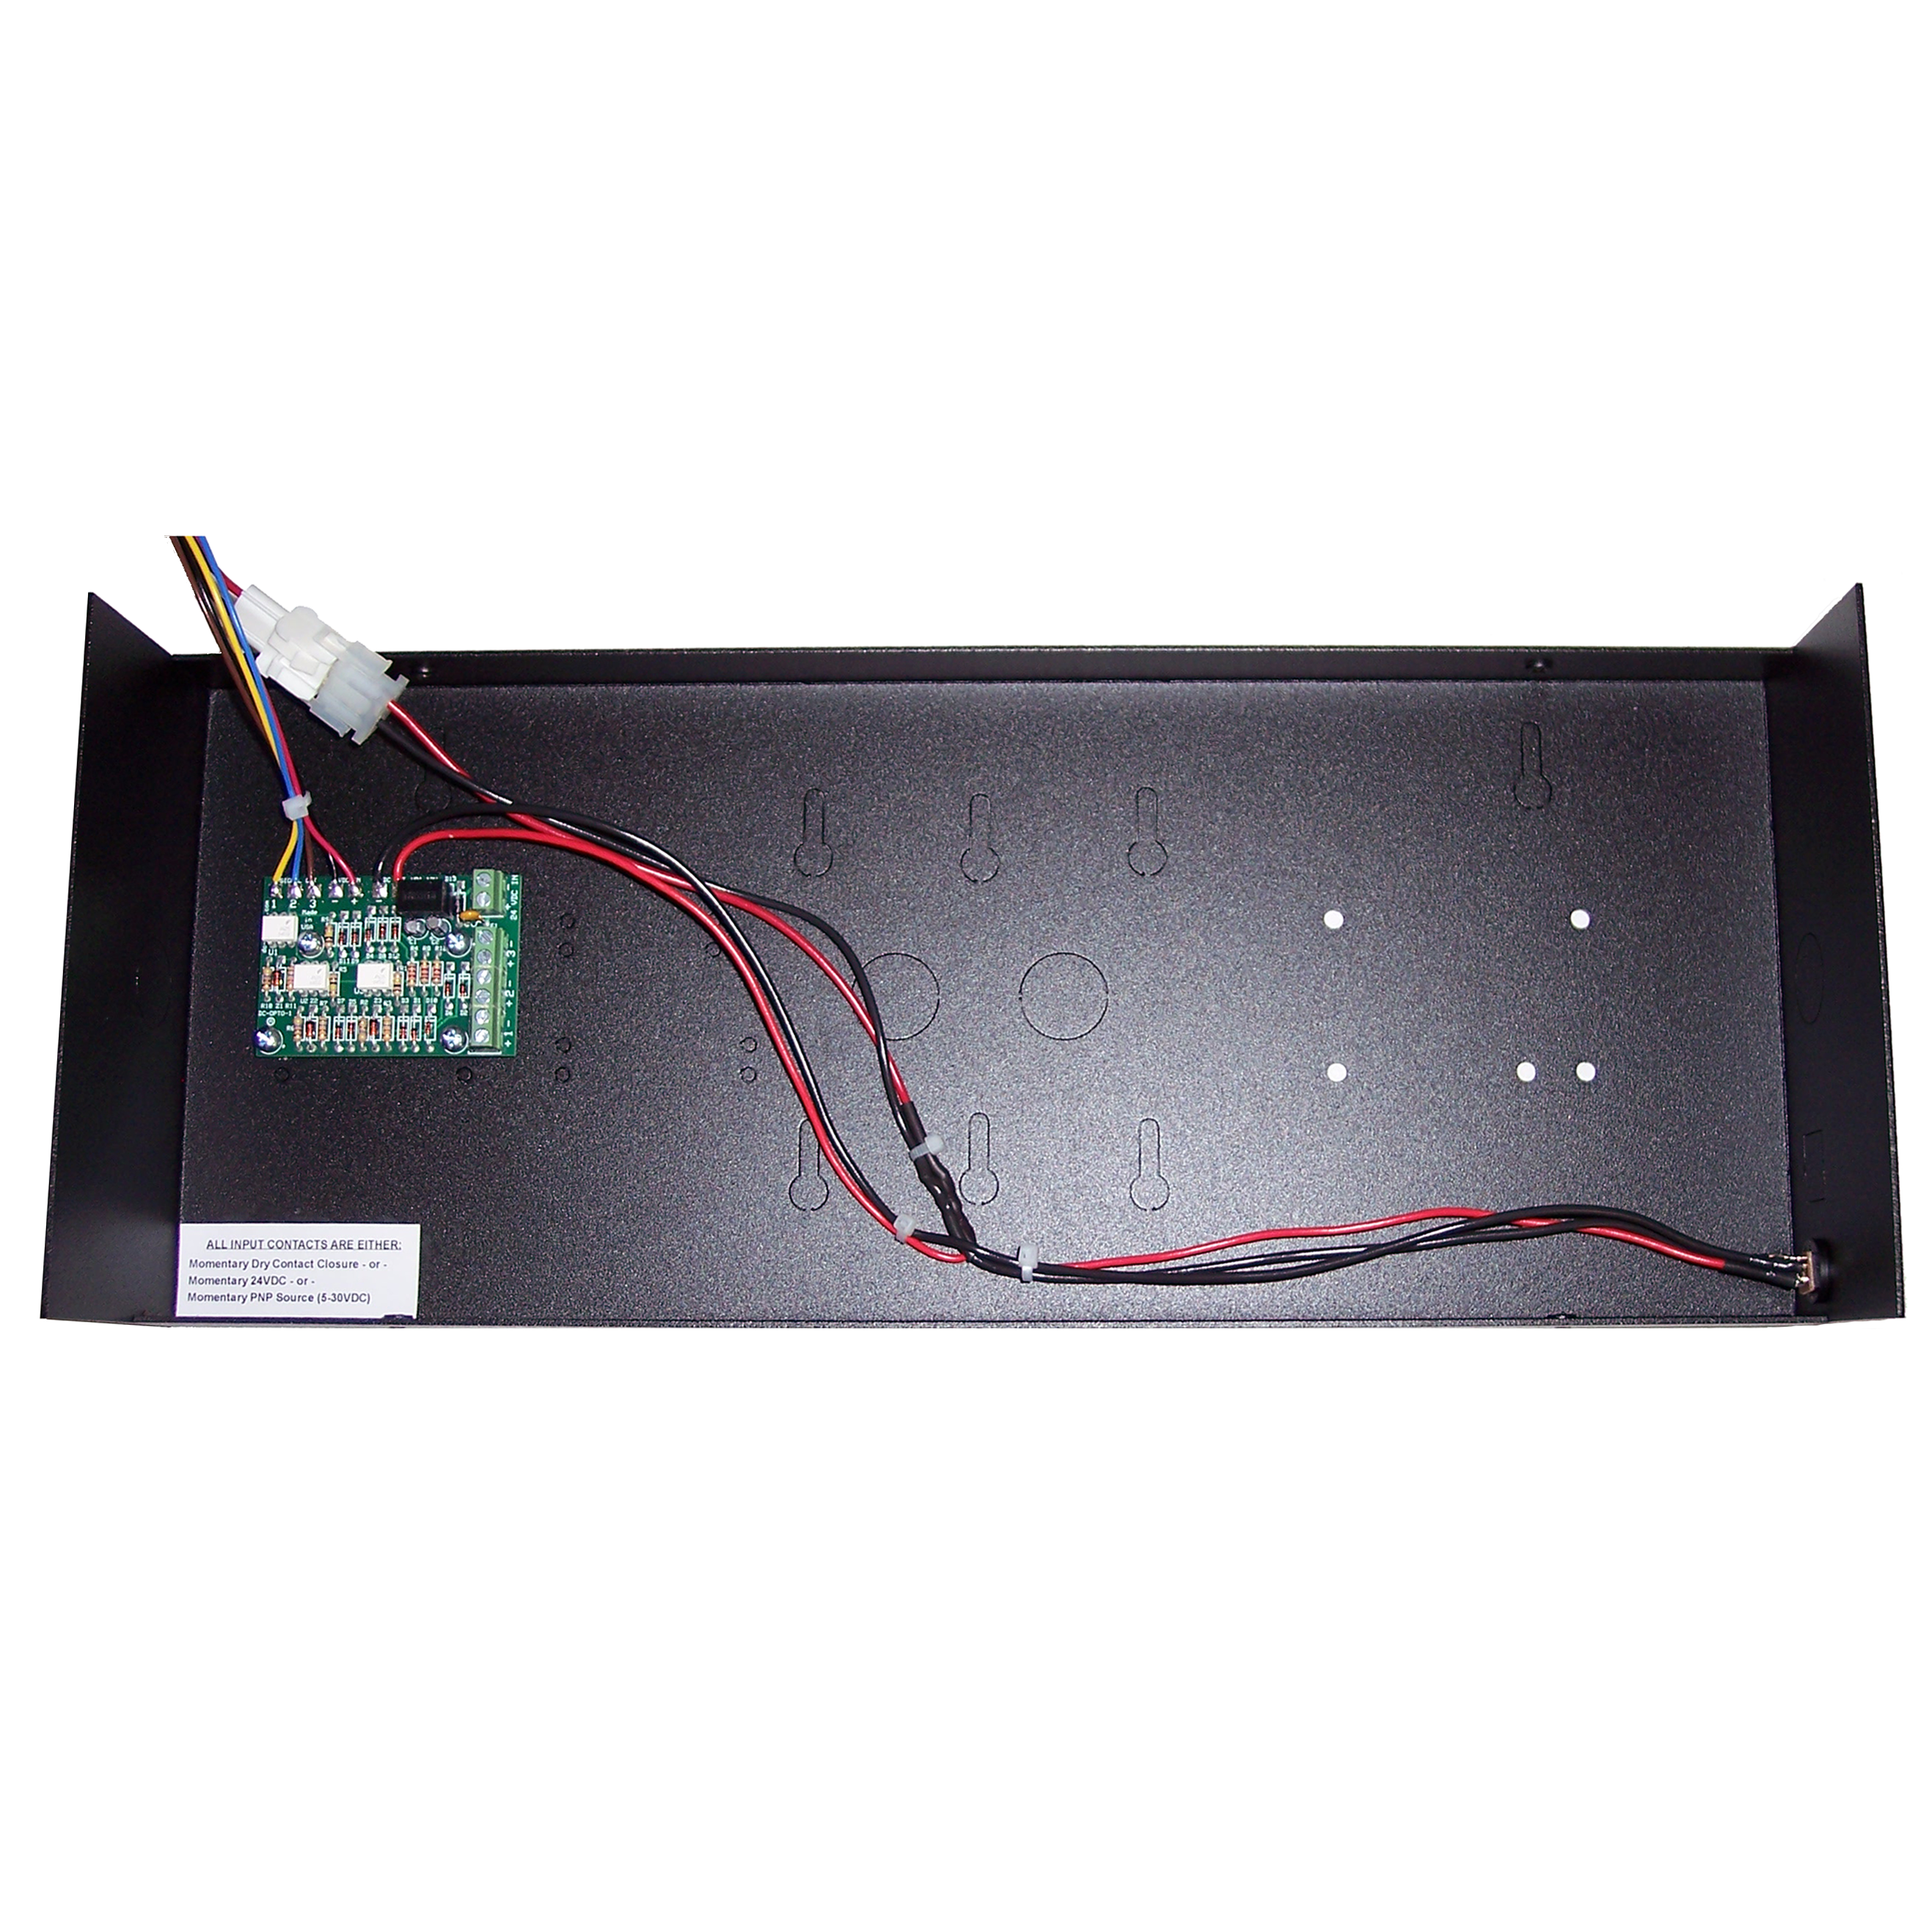 (DC-40T-UP-TERM) 4.0 Inch LED Digital, Multi-Input (PLC-Relay-Switch-Sensor) Controlled, Count Up Timer, Shift Digit Technology 1